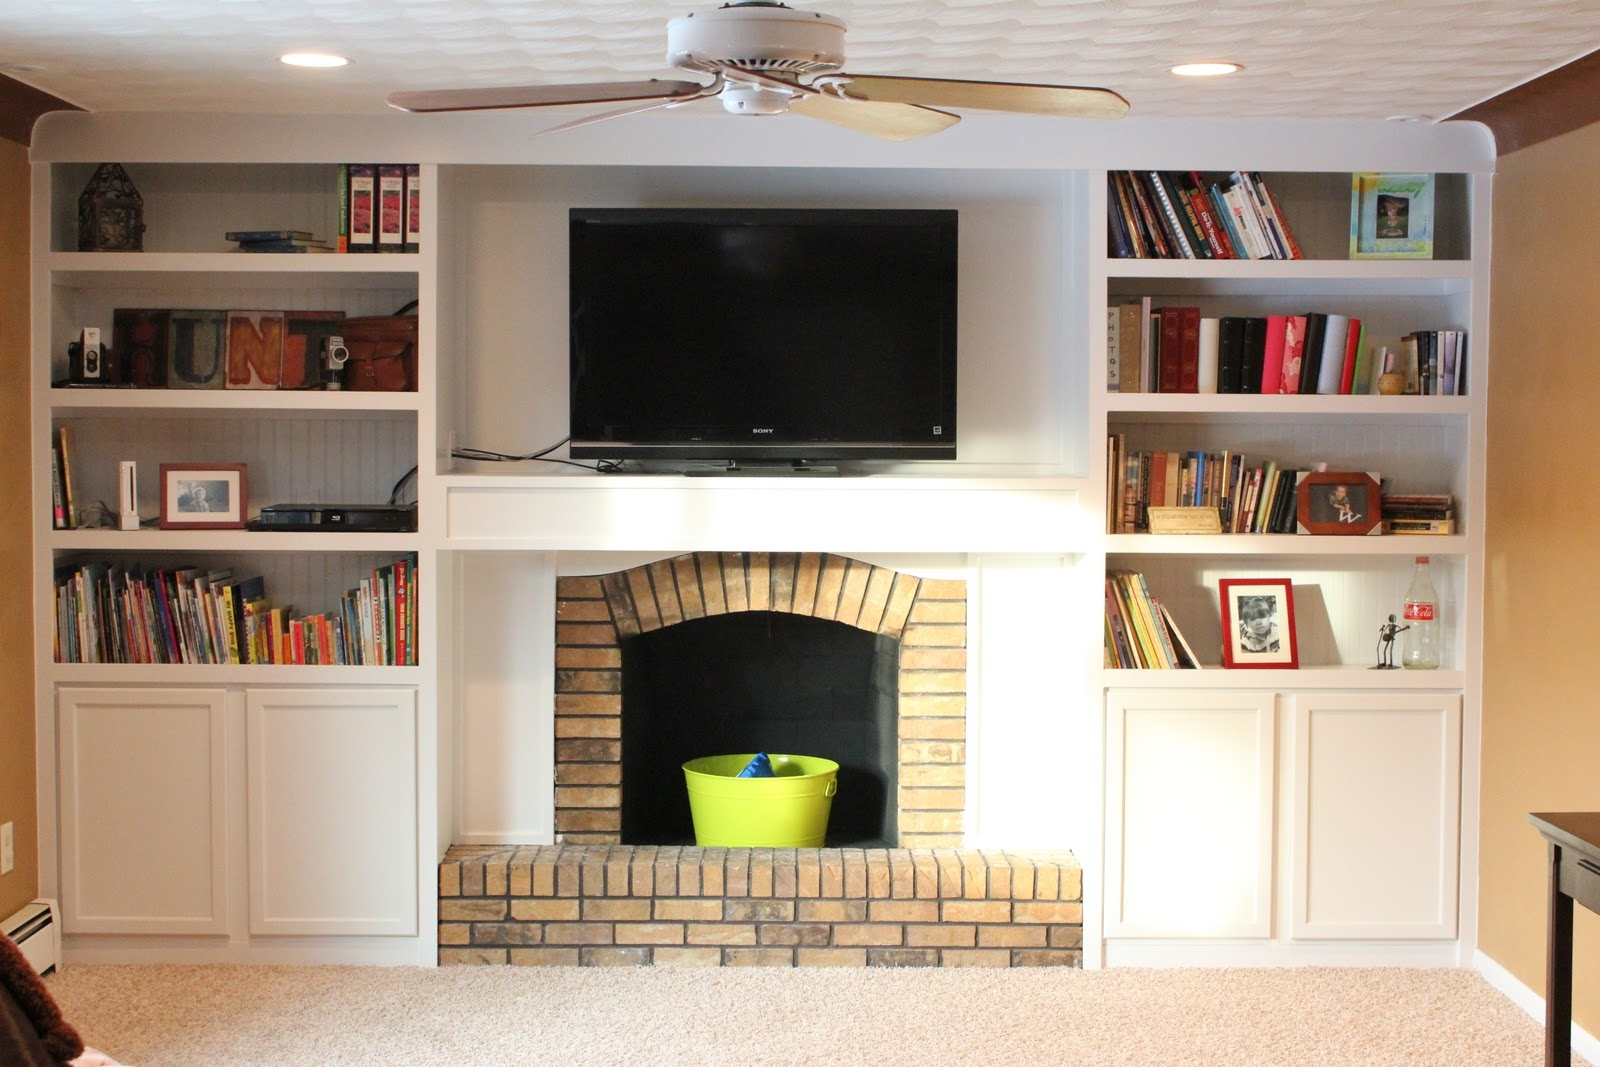 Fireplace Remodel With Built In Bookshelves Book Shelves For Bookcase With Tv Space (View 9 of 15)